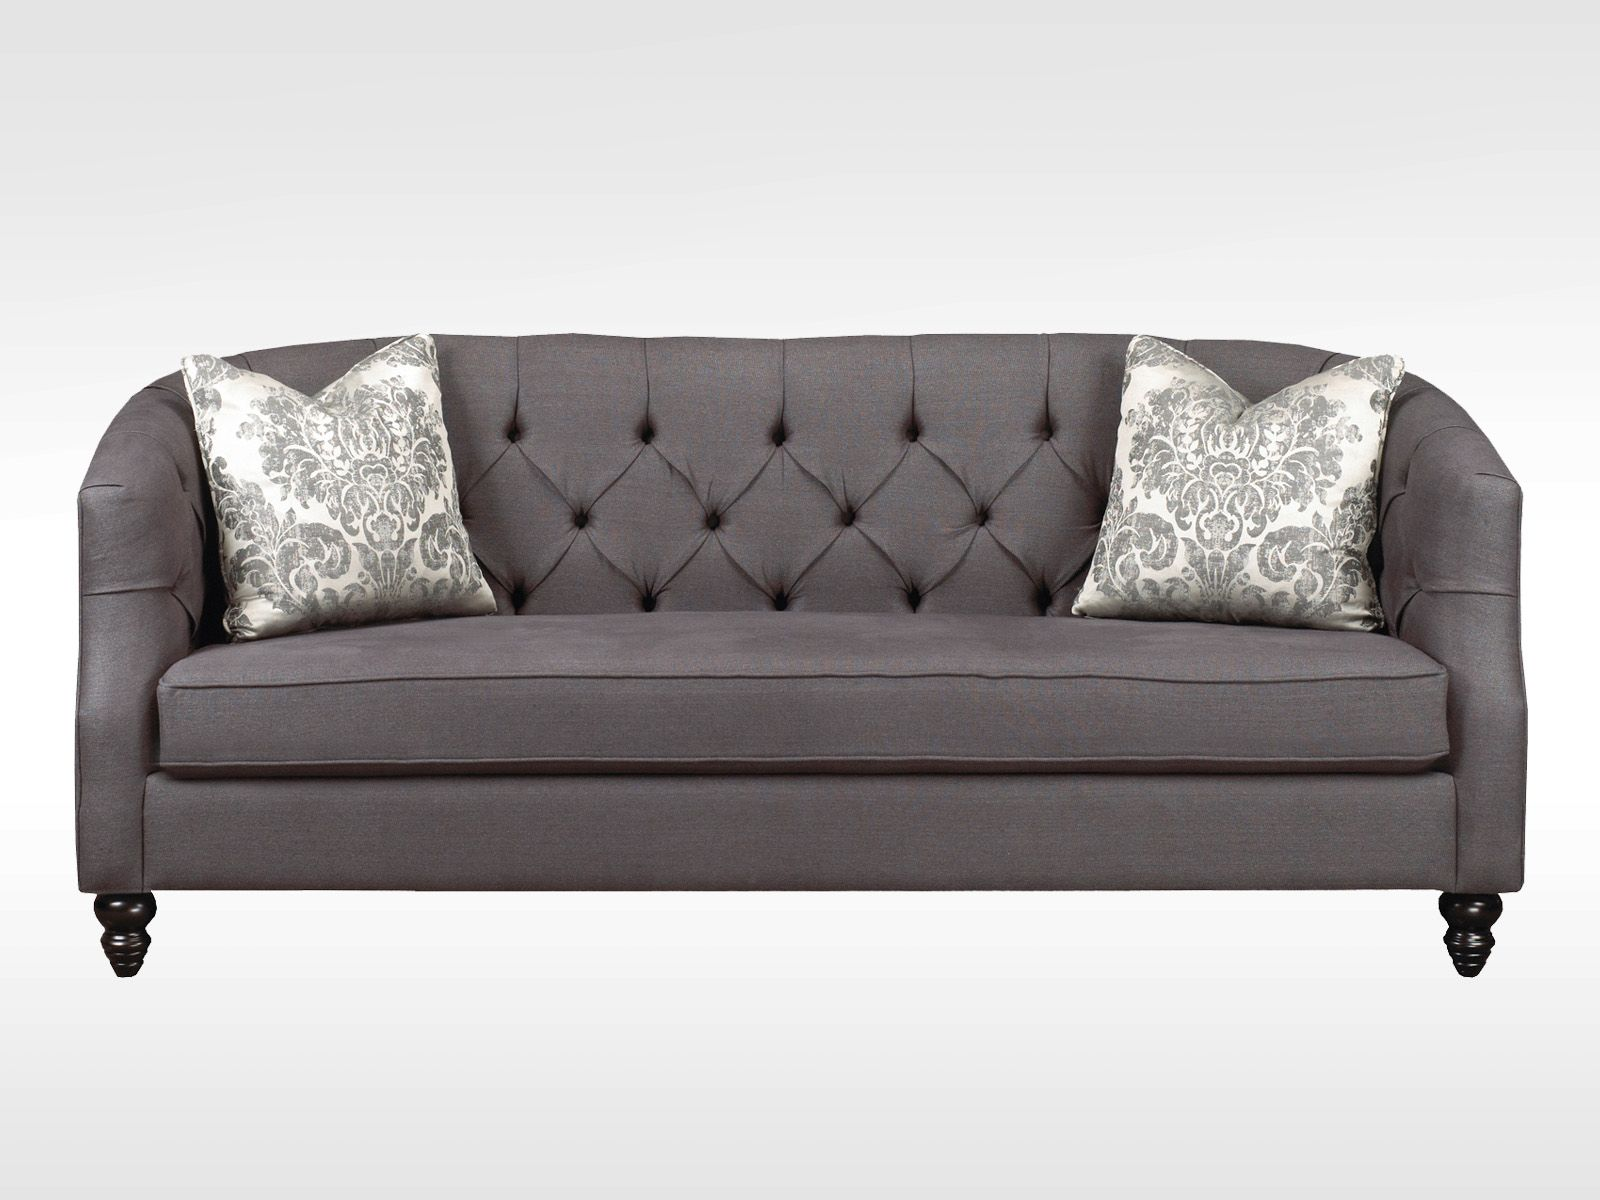 by Brentwood - 80x33 $2,200 - made in Canada with sustainable no VOC soy based materials